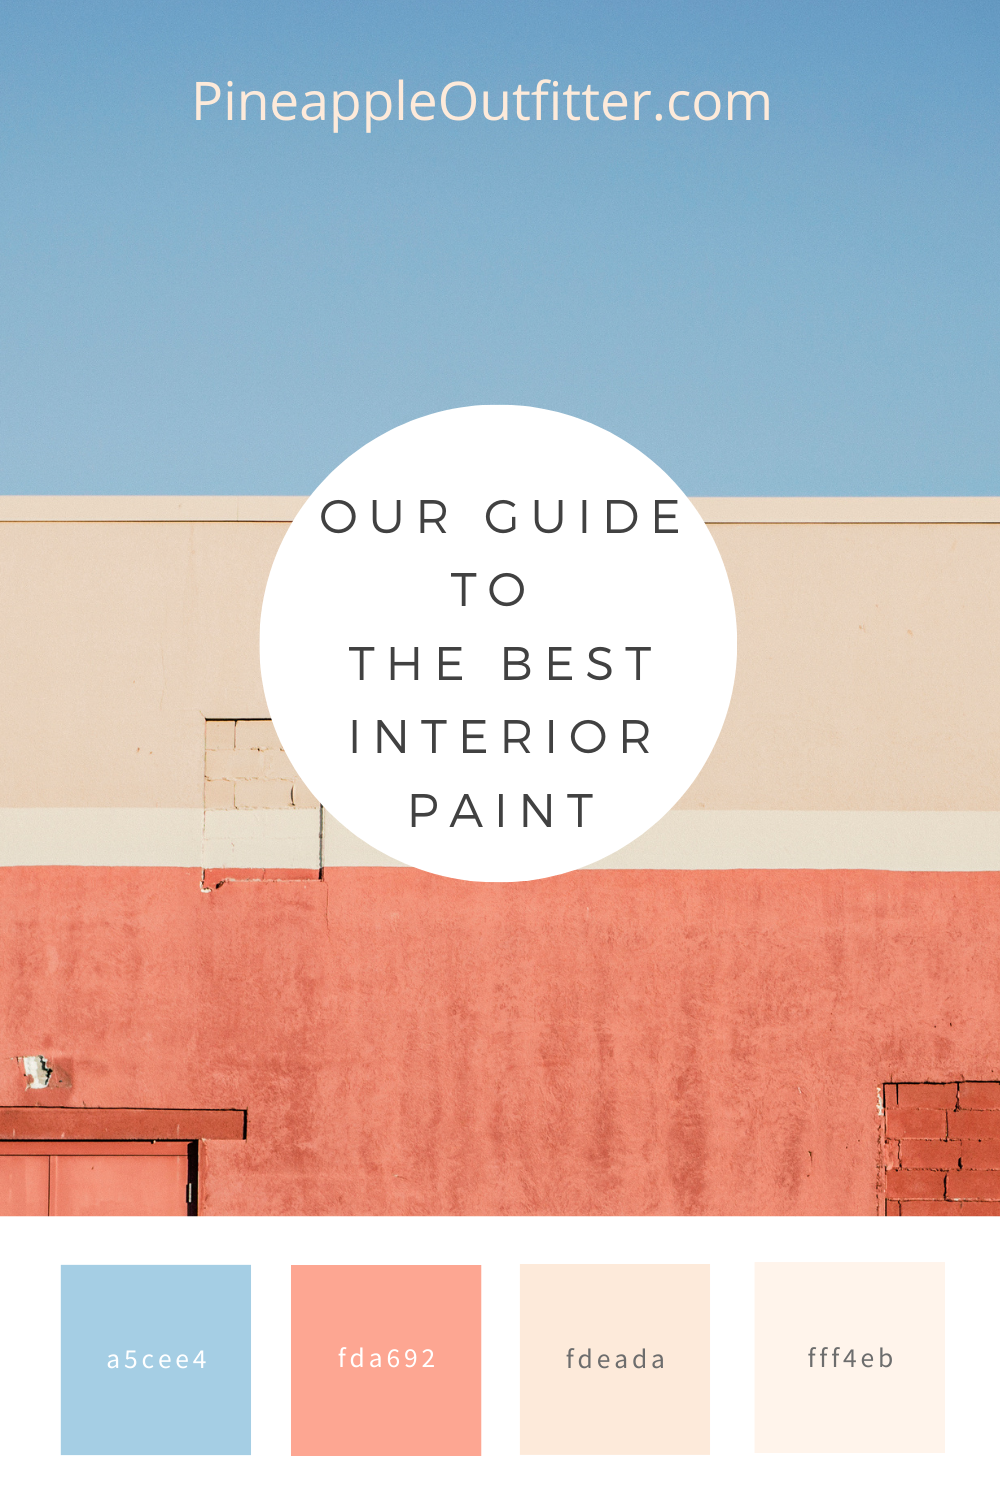 How to choose the best interior paint